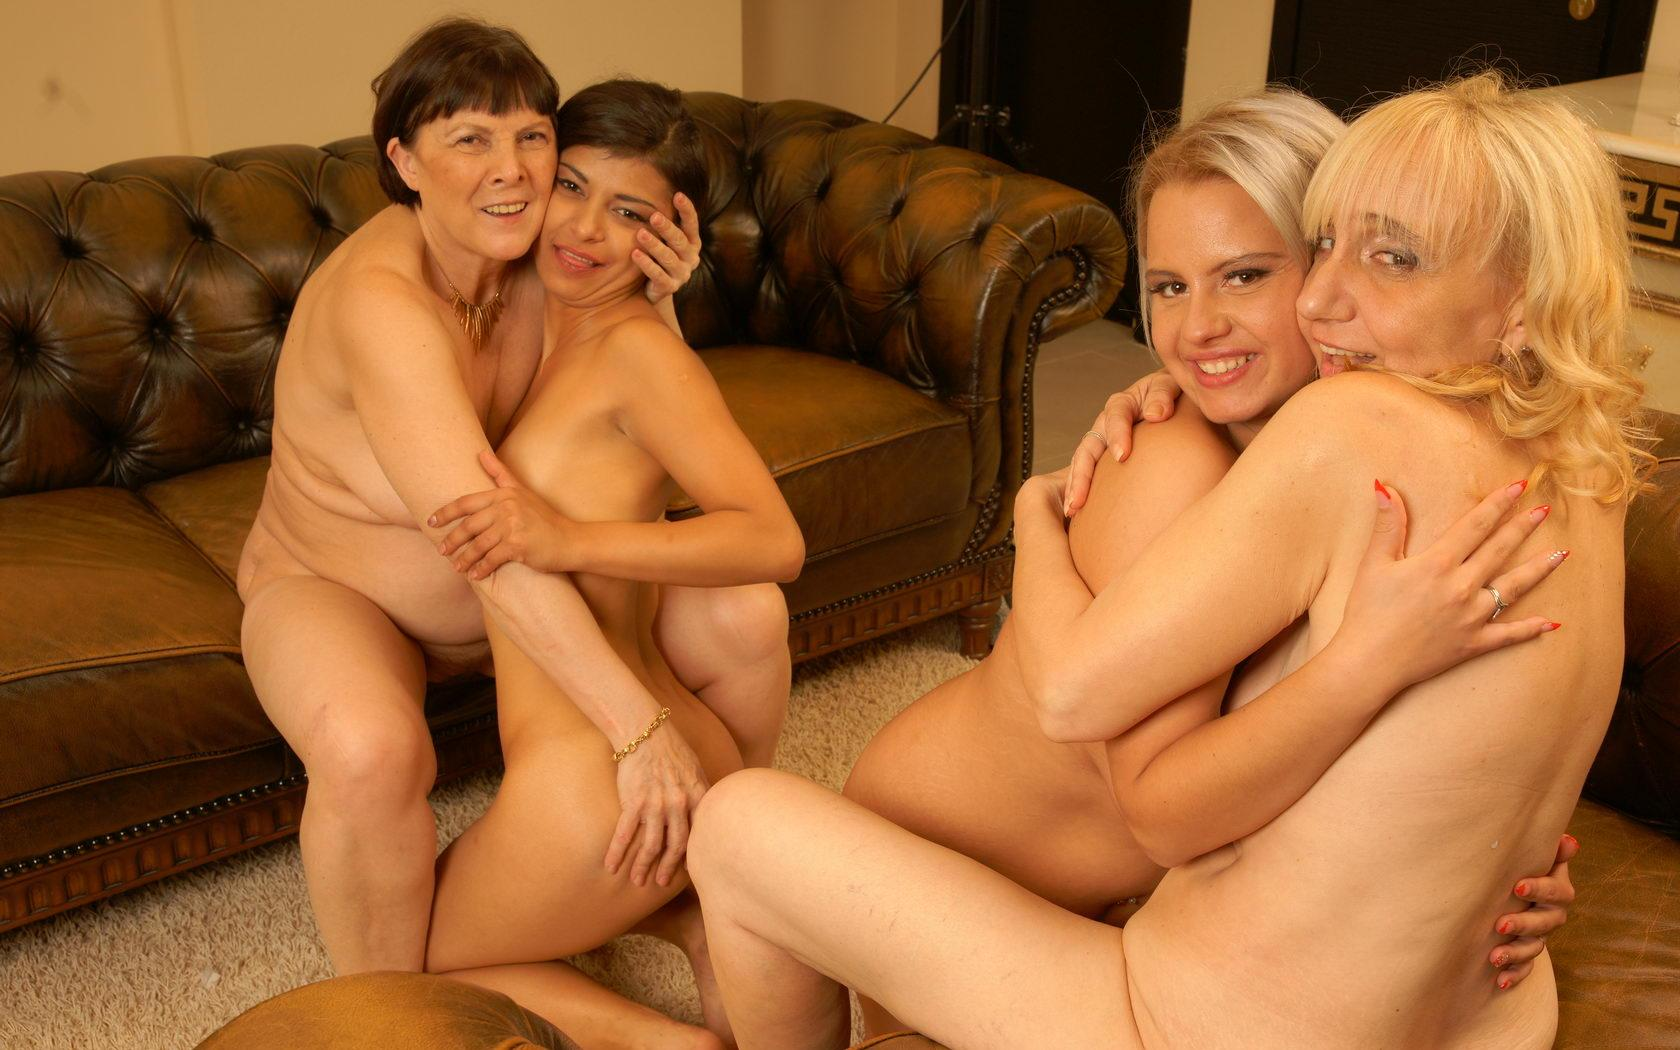 Nancy a horny granny seducing young girls for her lesbian granny pussy pleasure